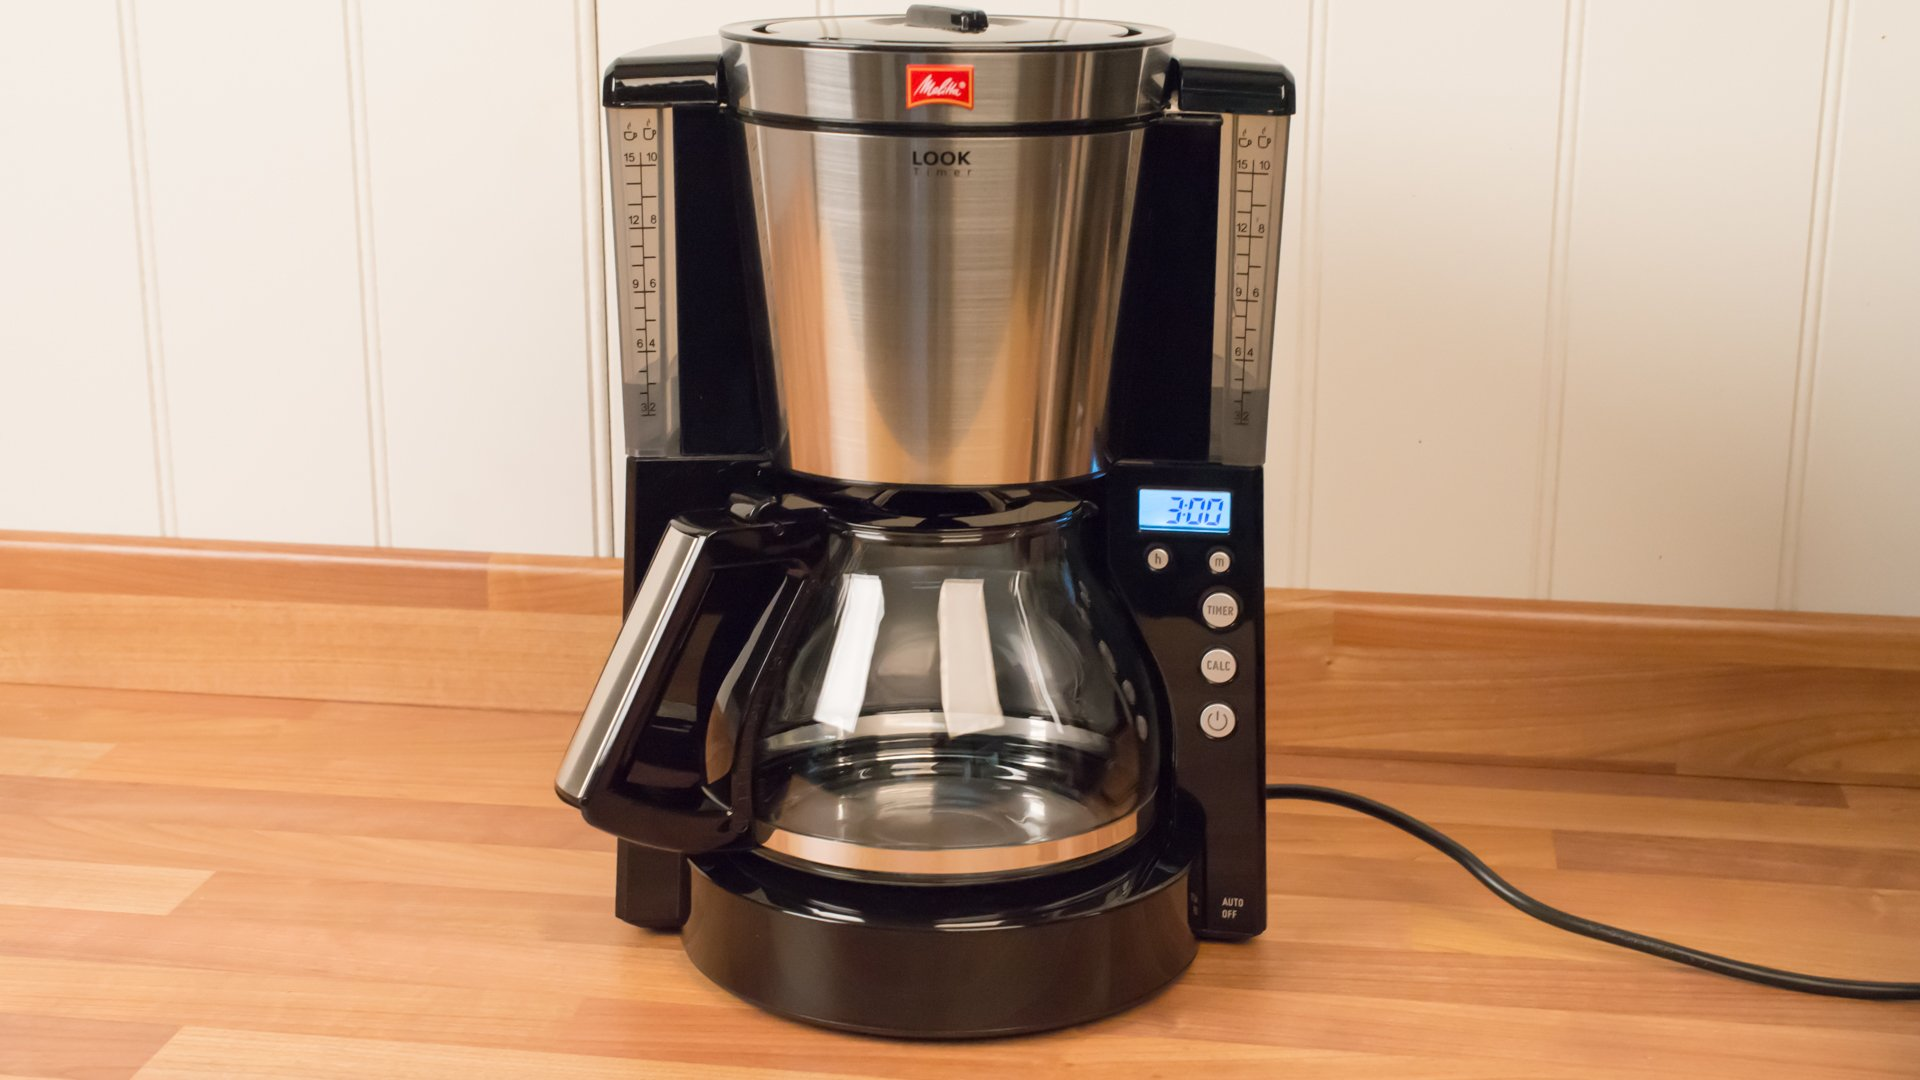 Drip Coffee Maker With Timer : Melitta Look Timer review Expert Reviews